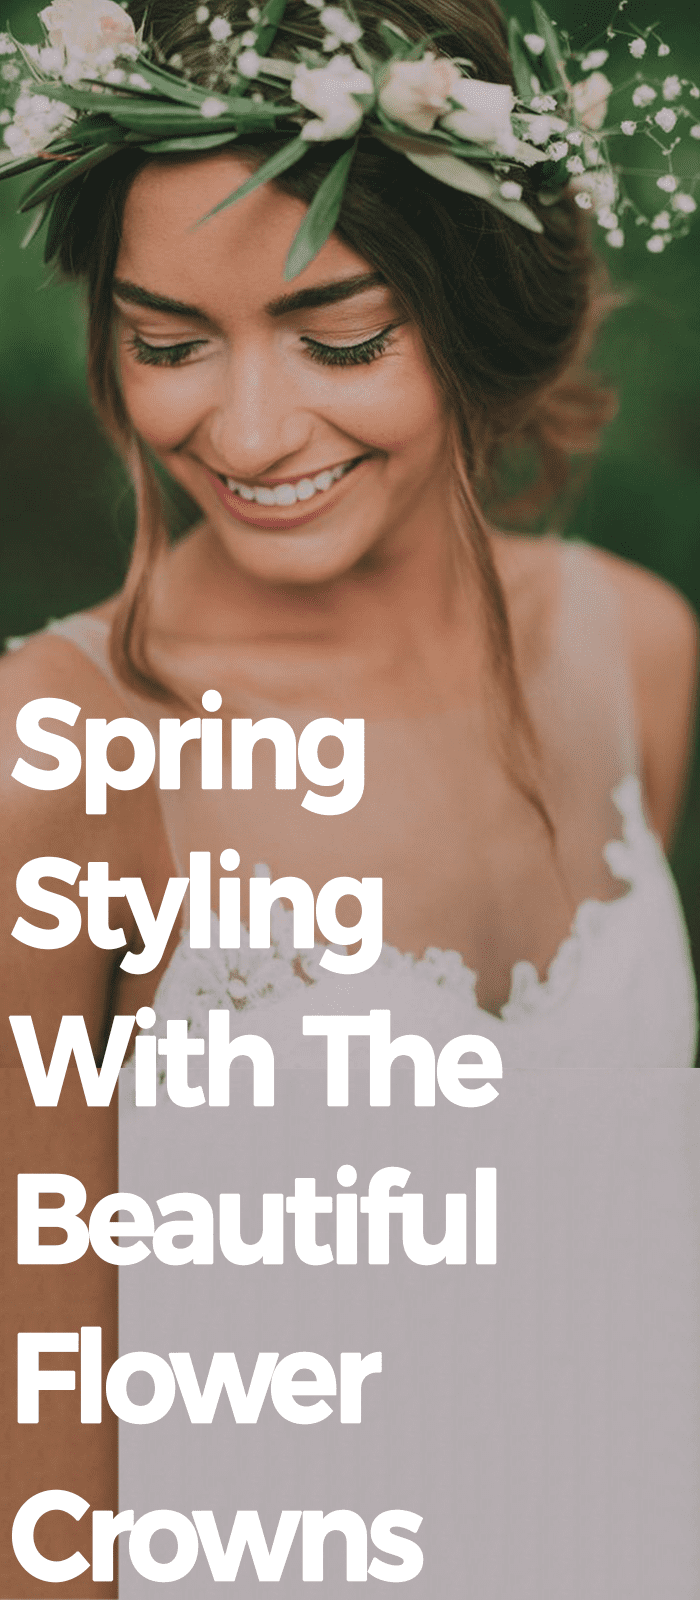 Spring Styling With The Beautiful Flower Crown